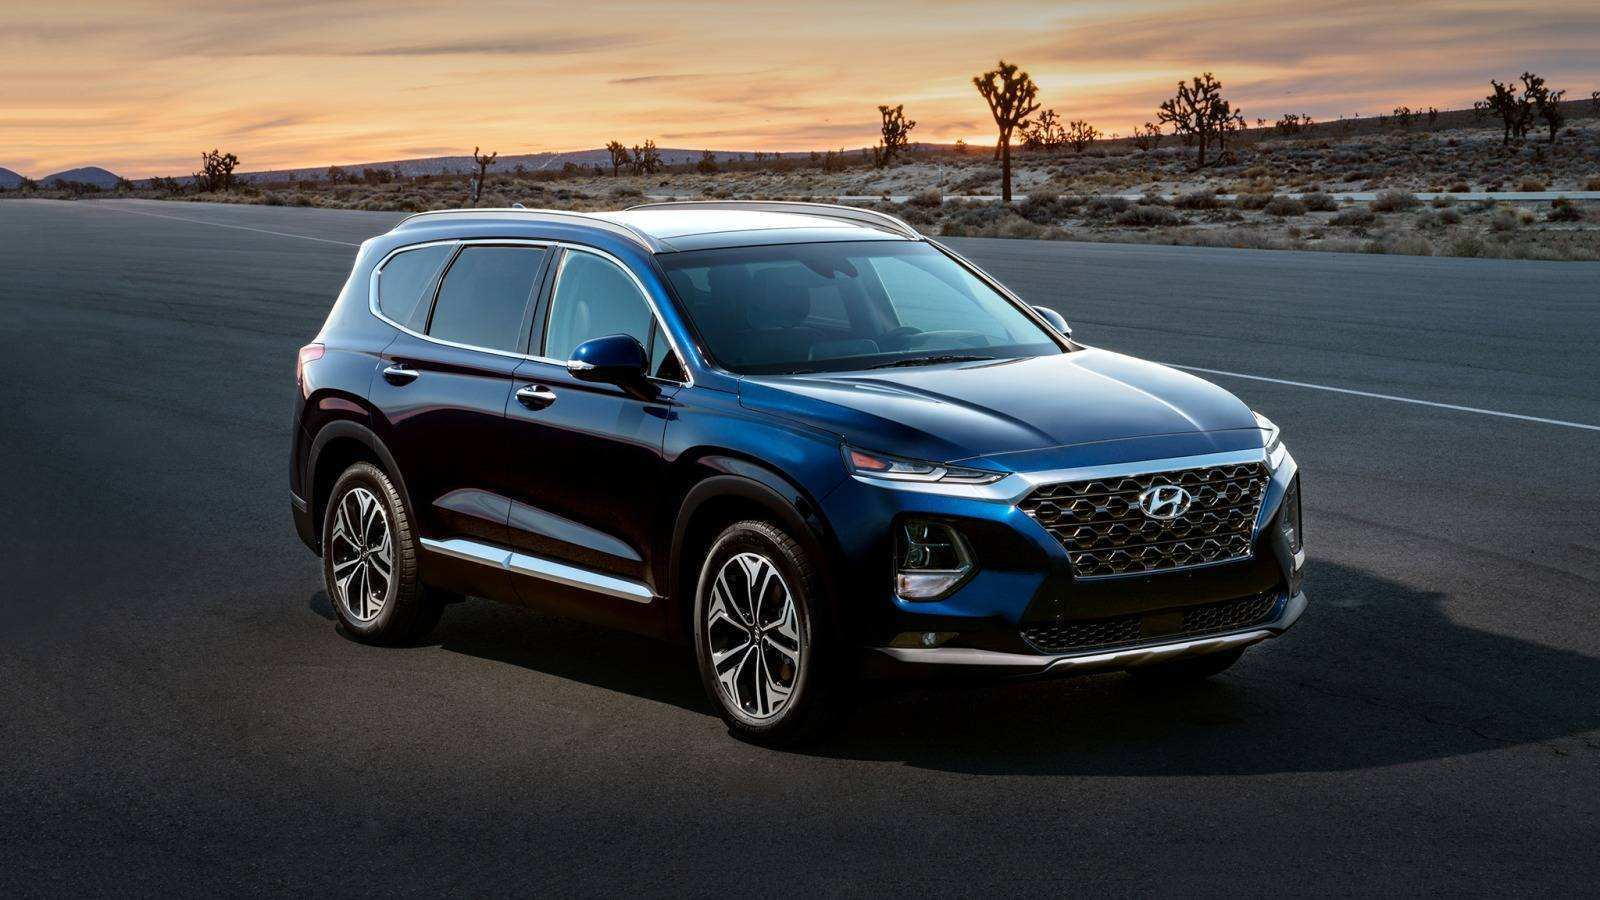 46 New 2019 Santa Fe Sports Price And Review